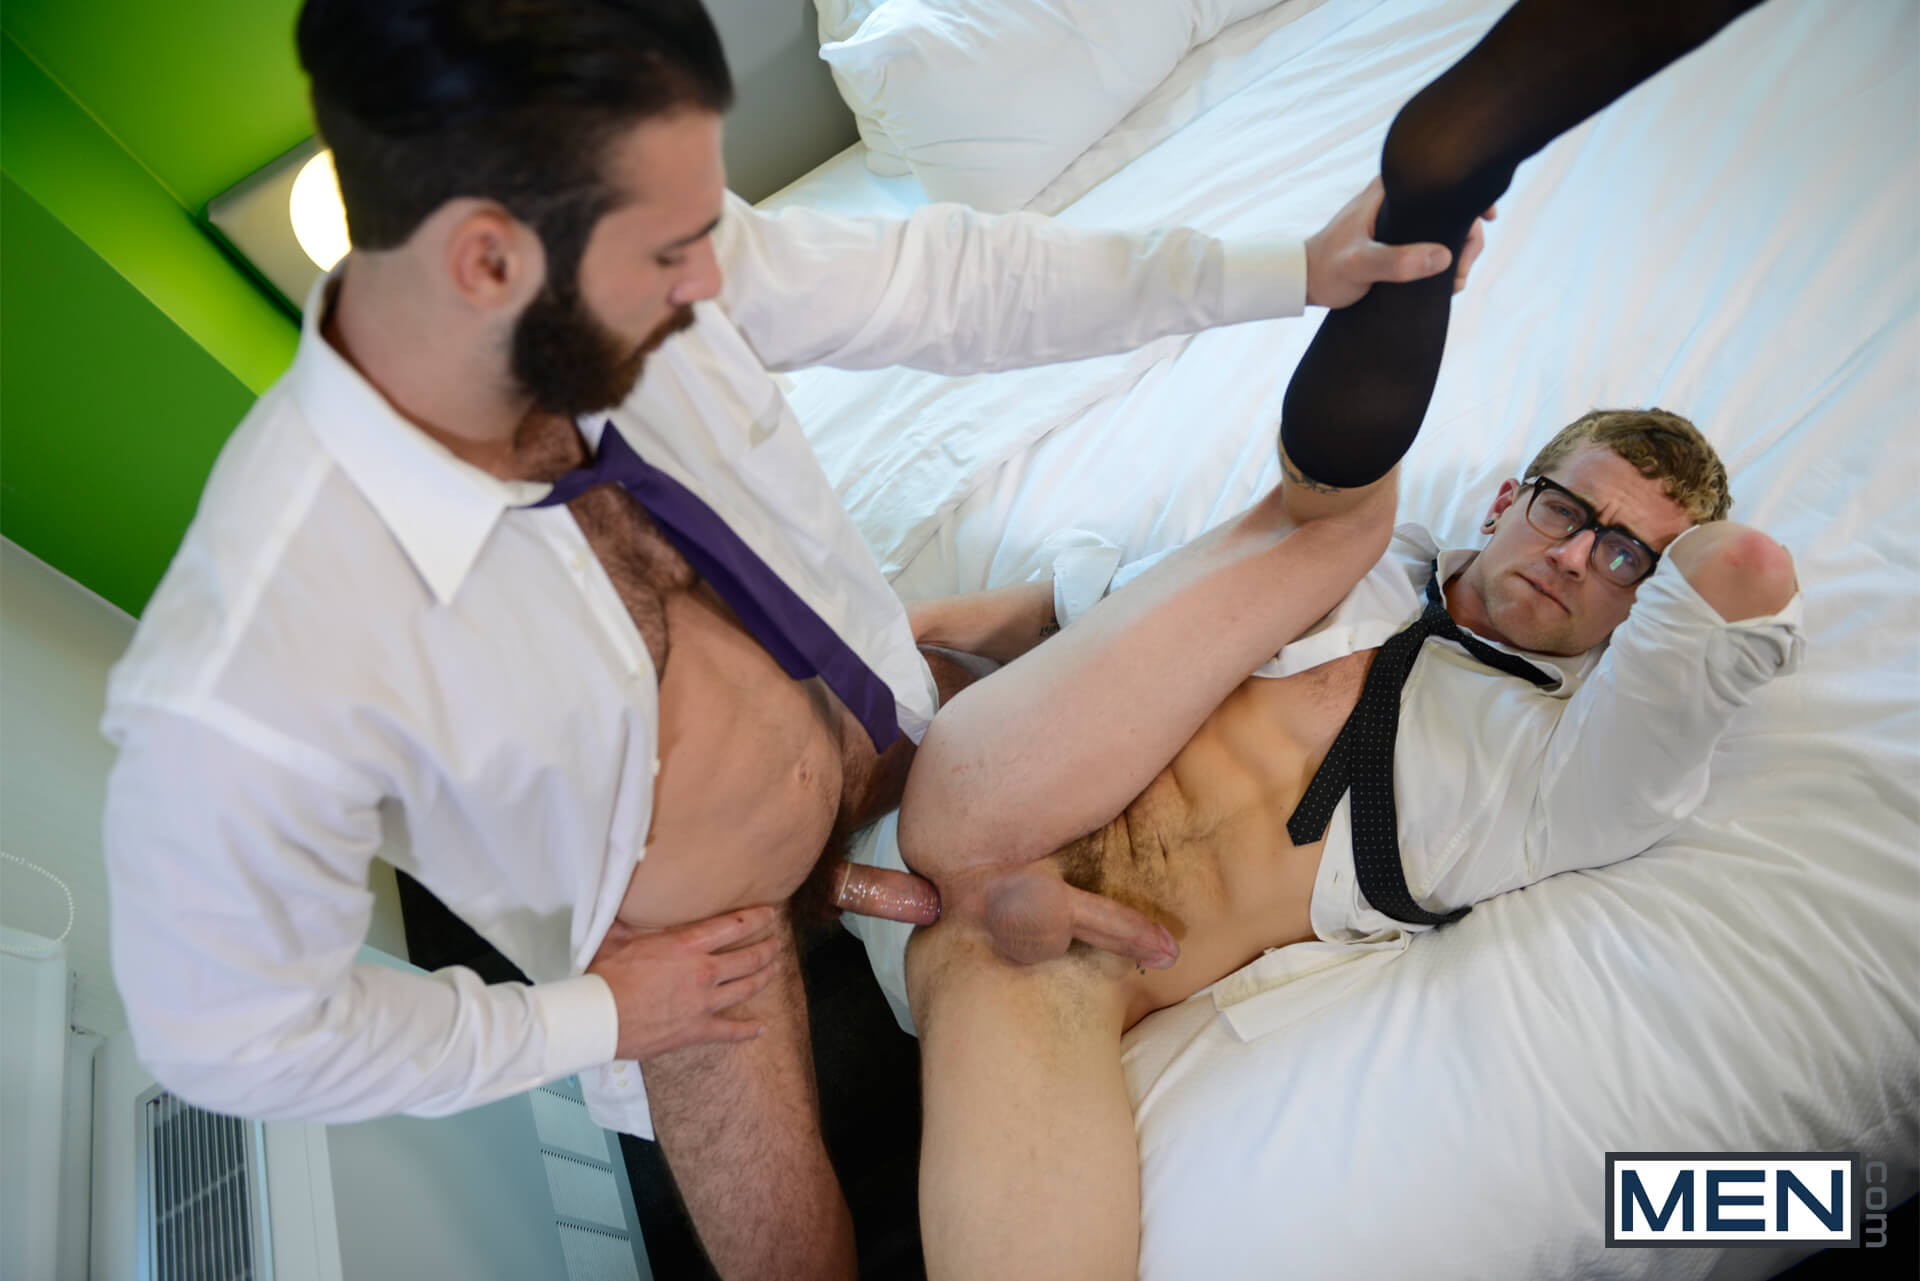 men the gay office executive suite part 2 jarec wentworth jay austin gay porn blog image 18